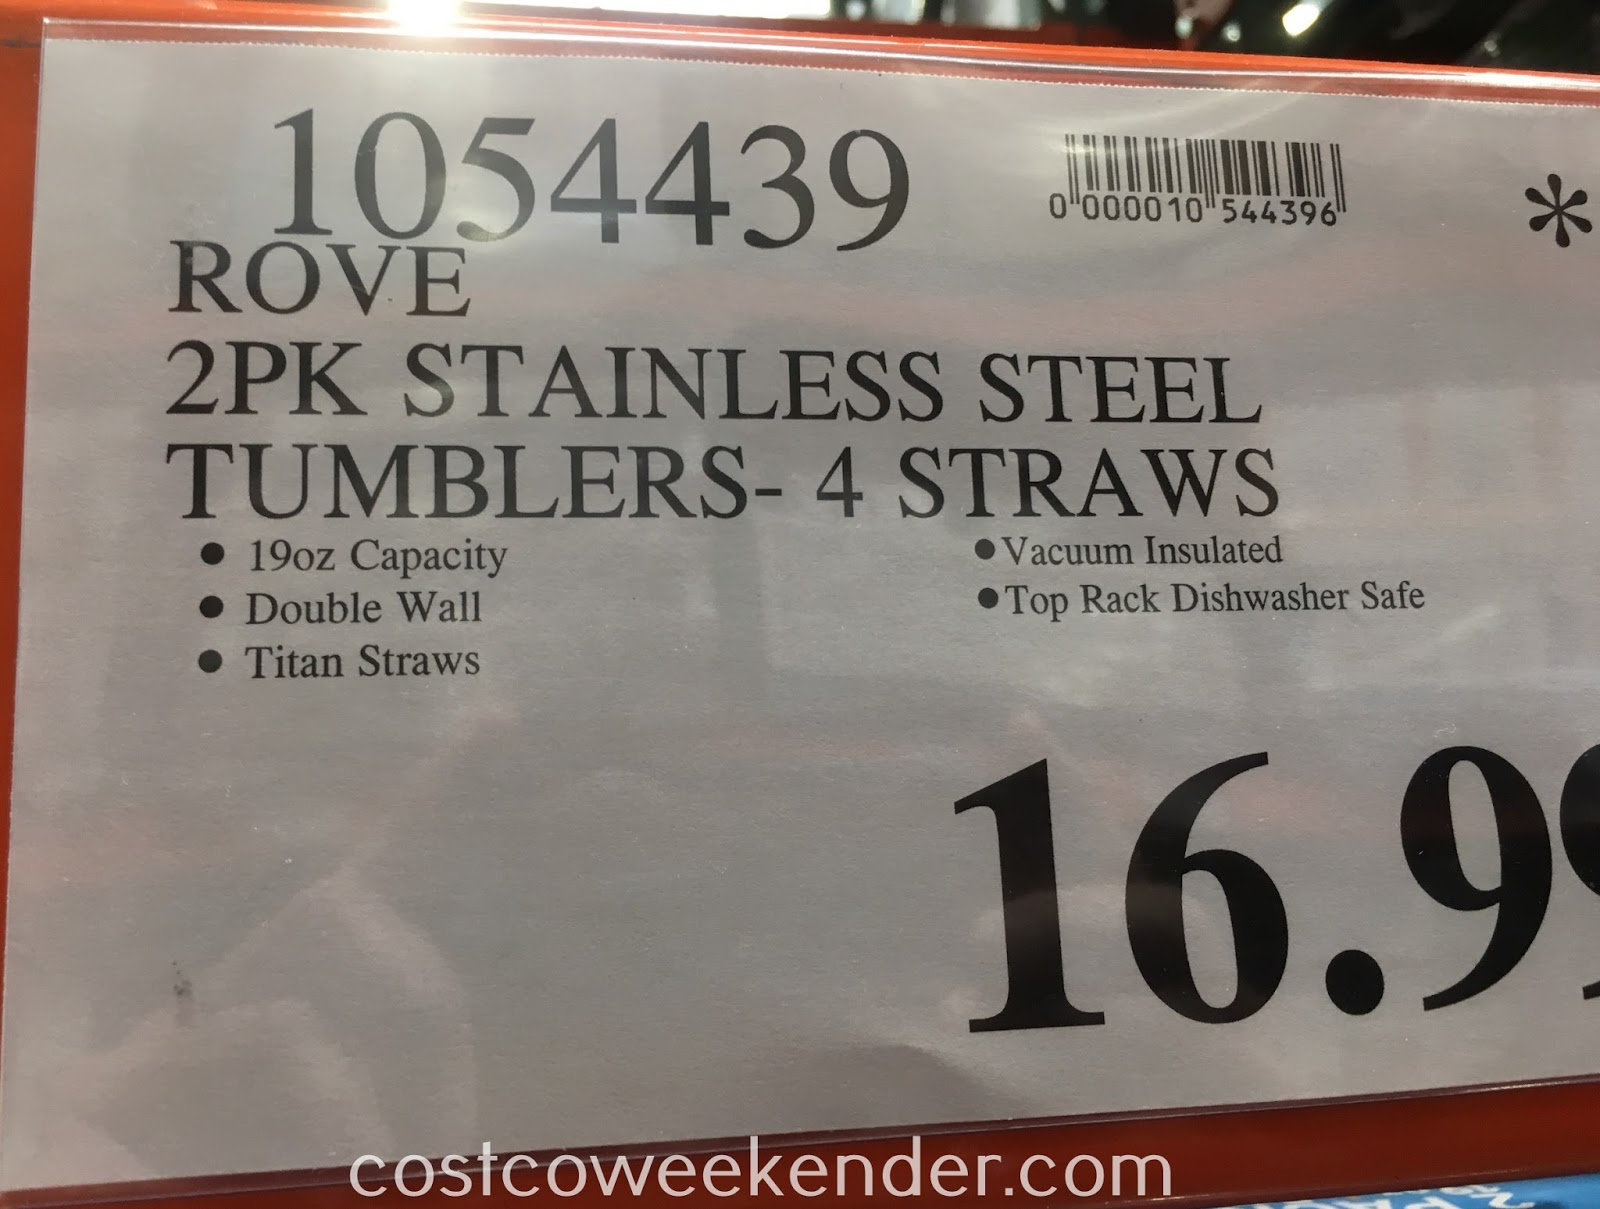 Deal for a 2 pack of Rove Stainless Steel Double Wall Vacuum Insulated Tumblers (2 pack) at Costco